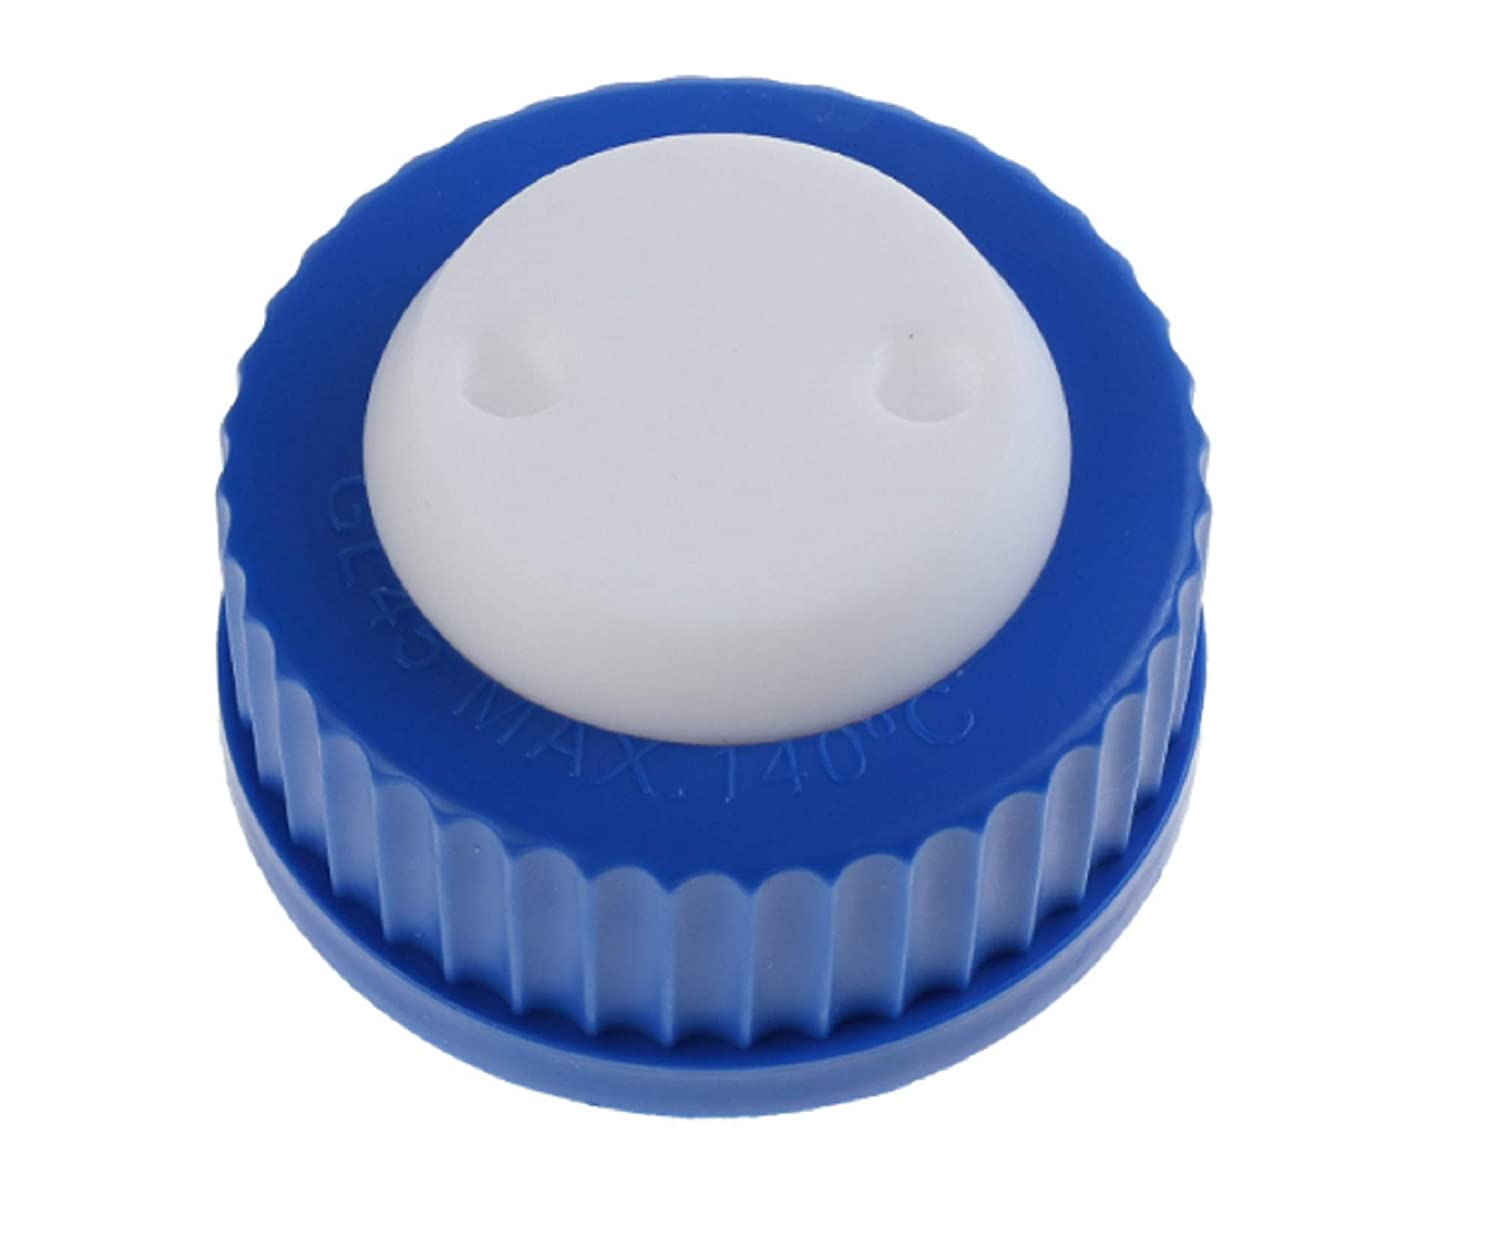 Bottle Adapter GL-45 Cap Fitting Feed Pack of 5 Sets Blue GL45 Safety Cap with Two Holes for 1//8 Inch OD Tubing Bottle Cap Assembly